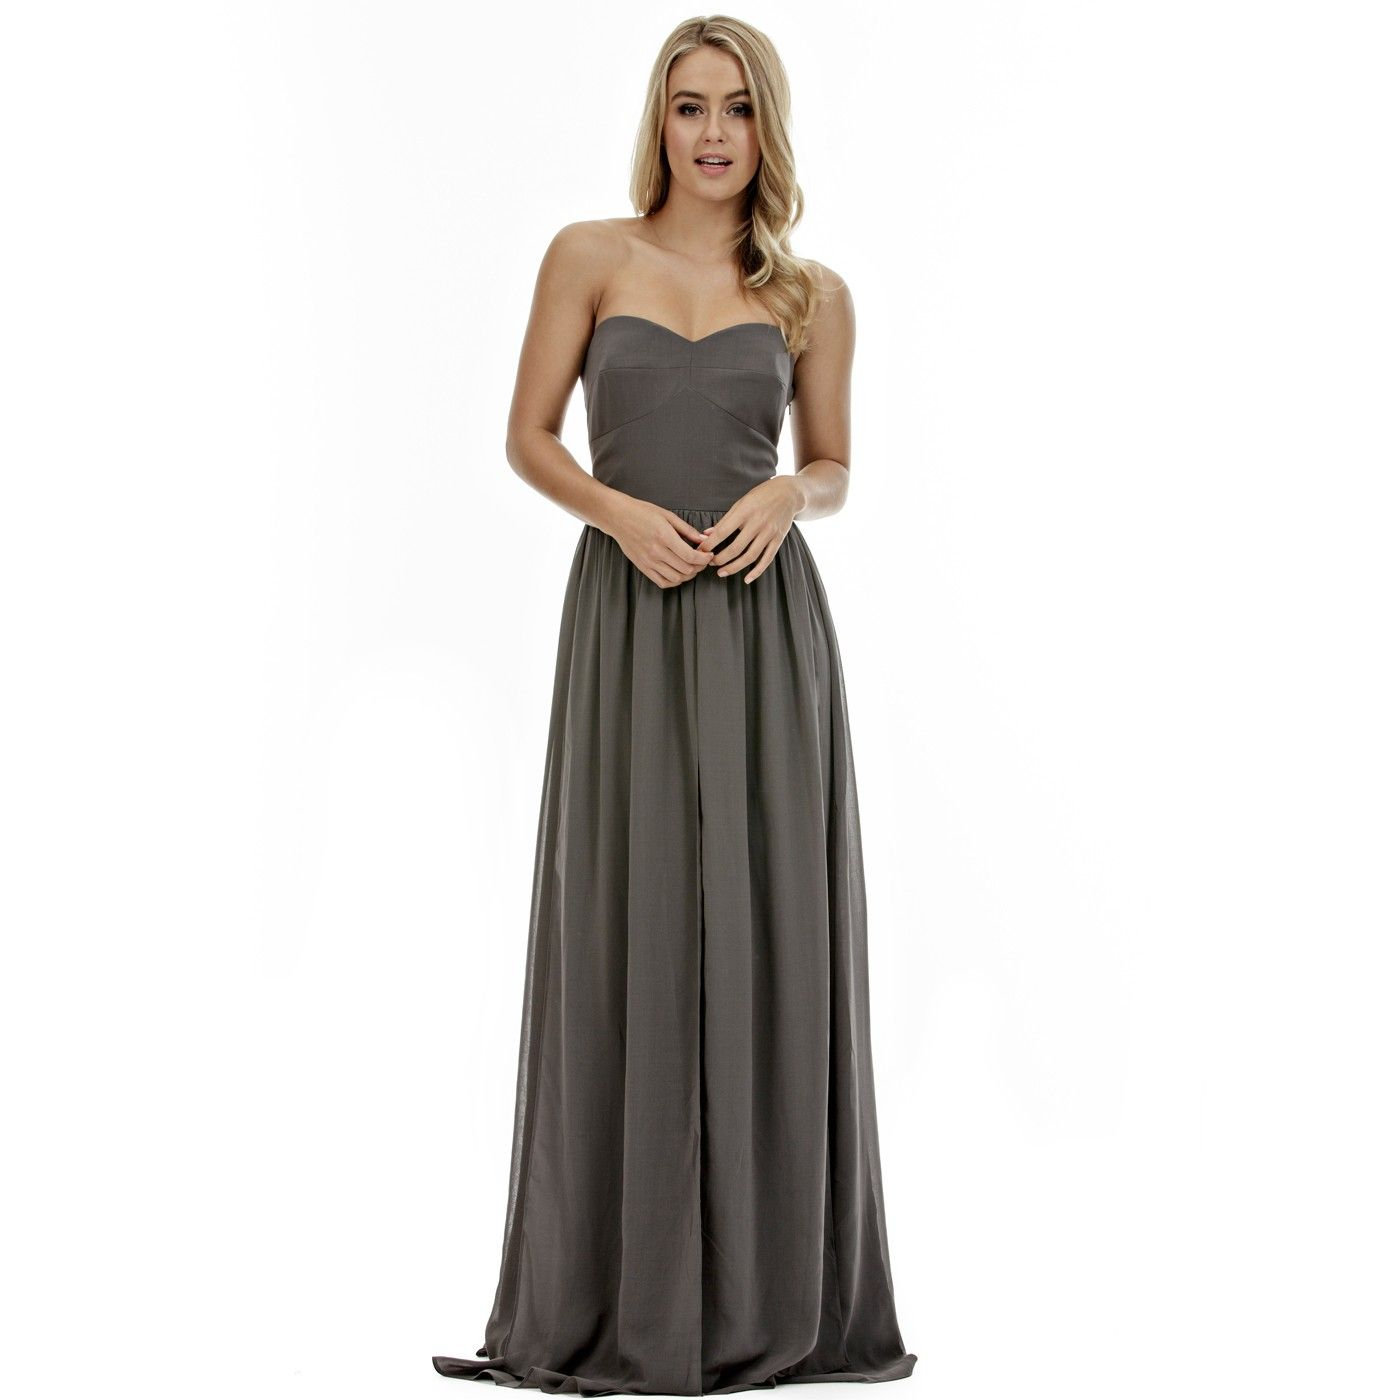 Langhem cecilia charcoal bridesmaid dress wedding attire charcoal bridesmaid dresses ombrellifo Image collections